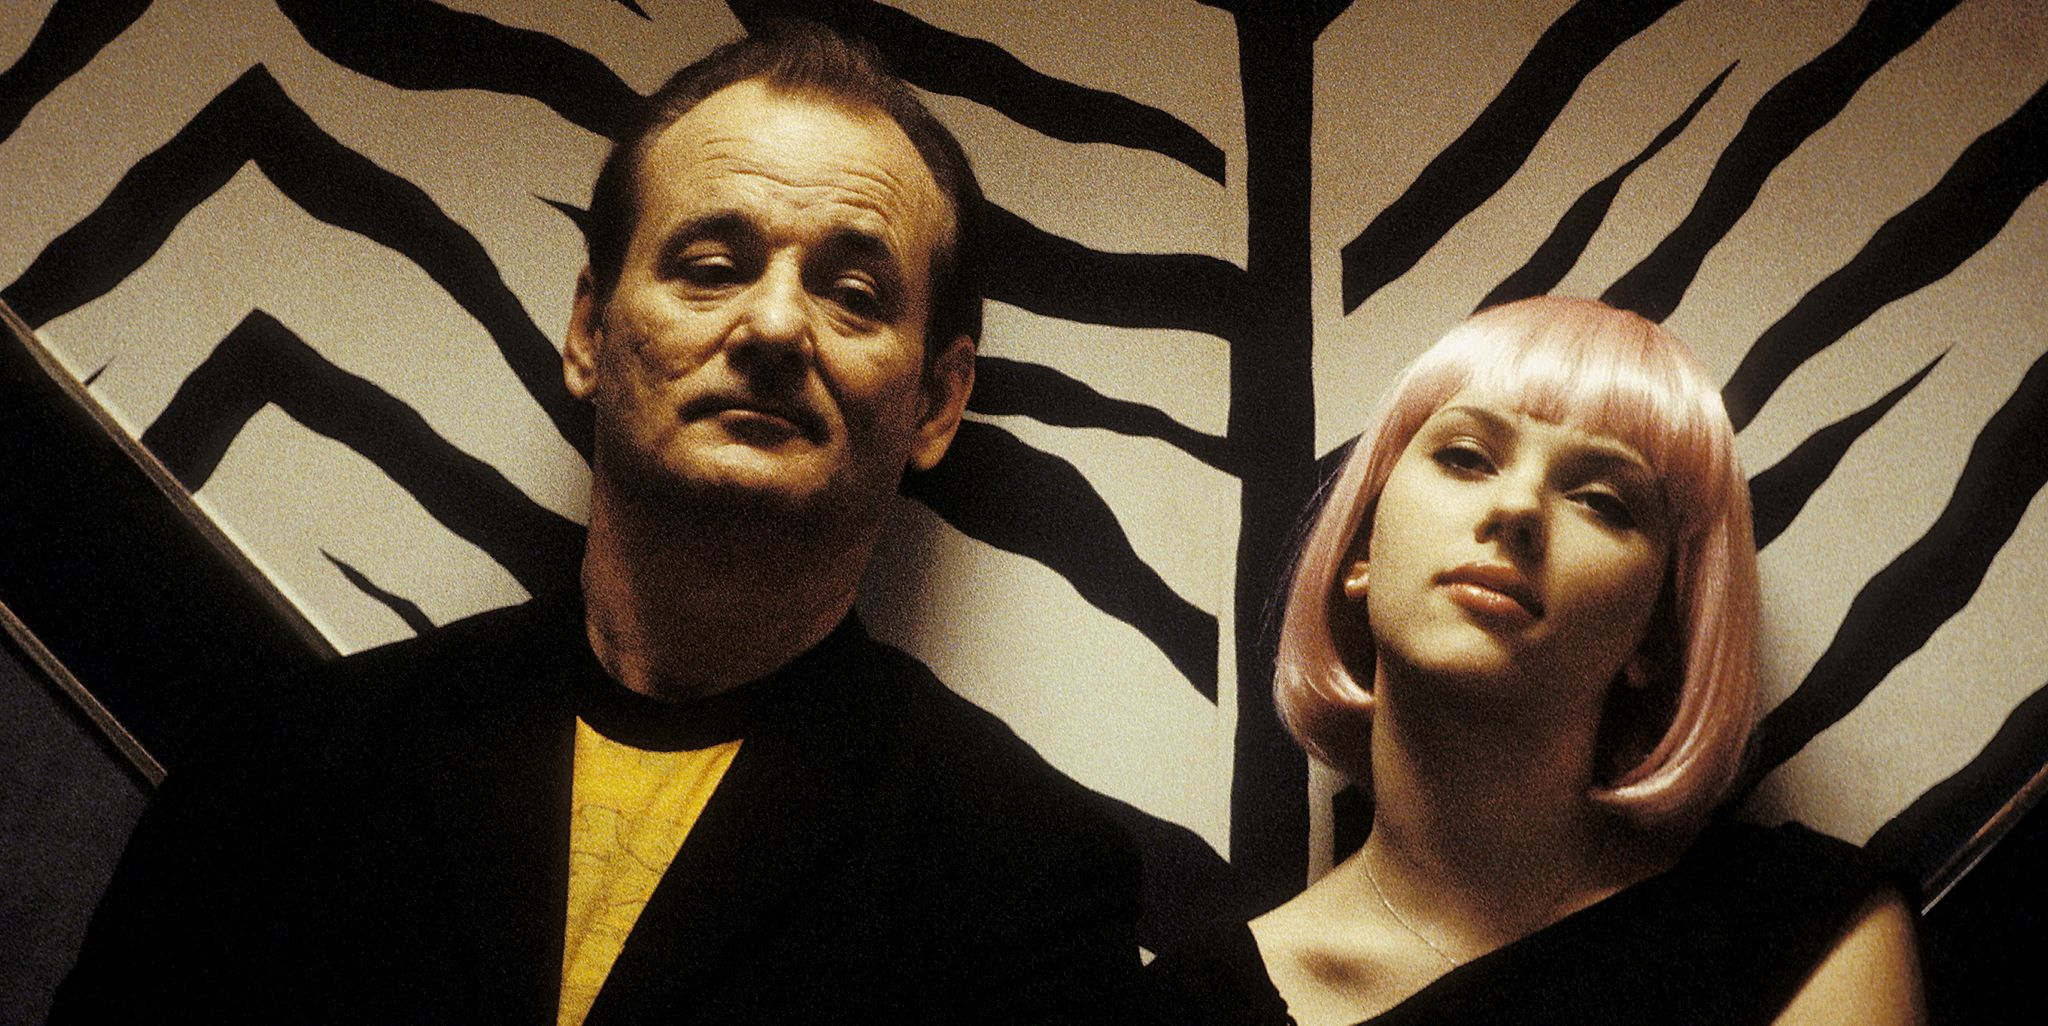 Bill Murray And Sofia Coppola To Reunite For A New Film, 16 Years After 'Lost In Translation',